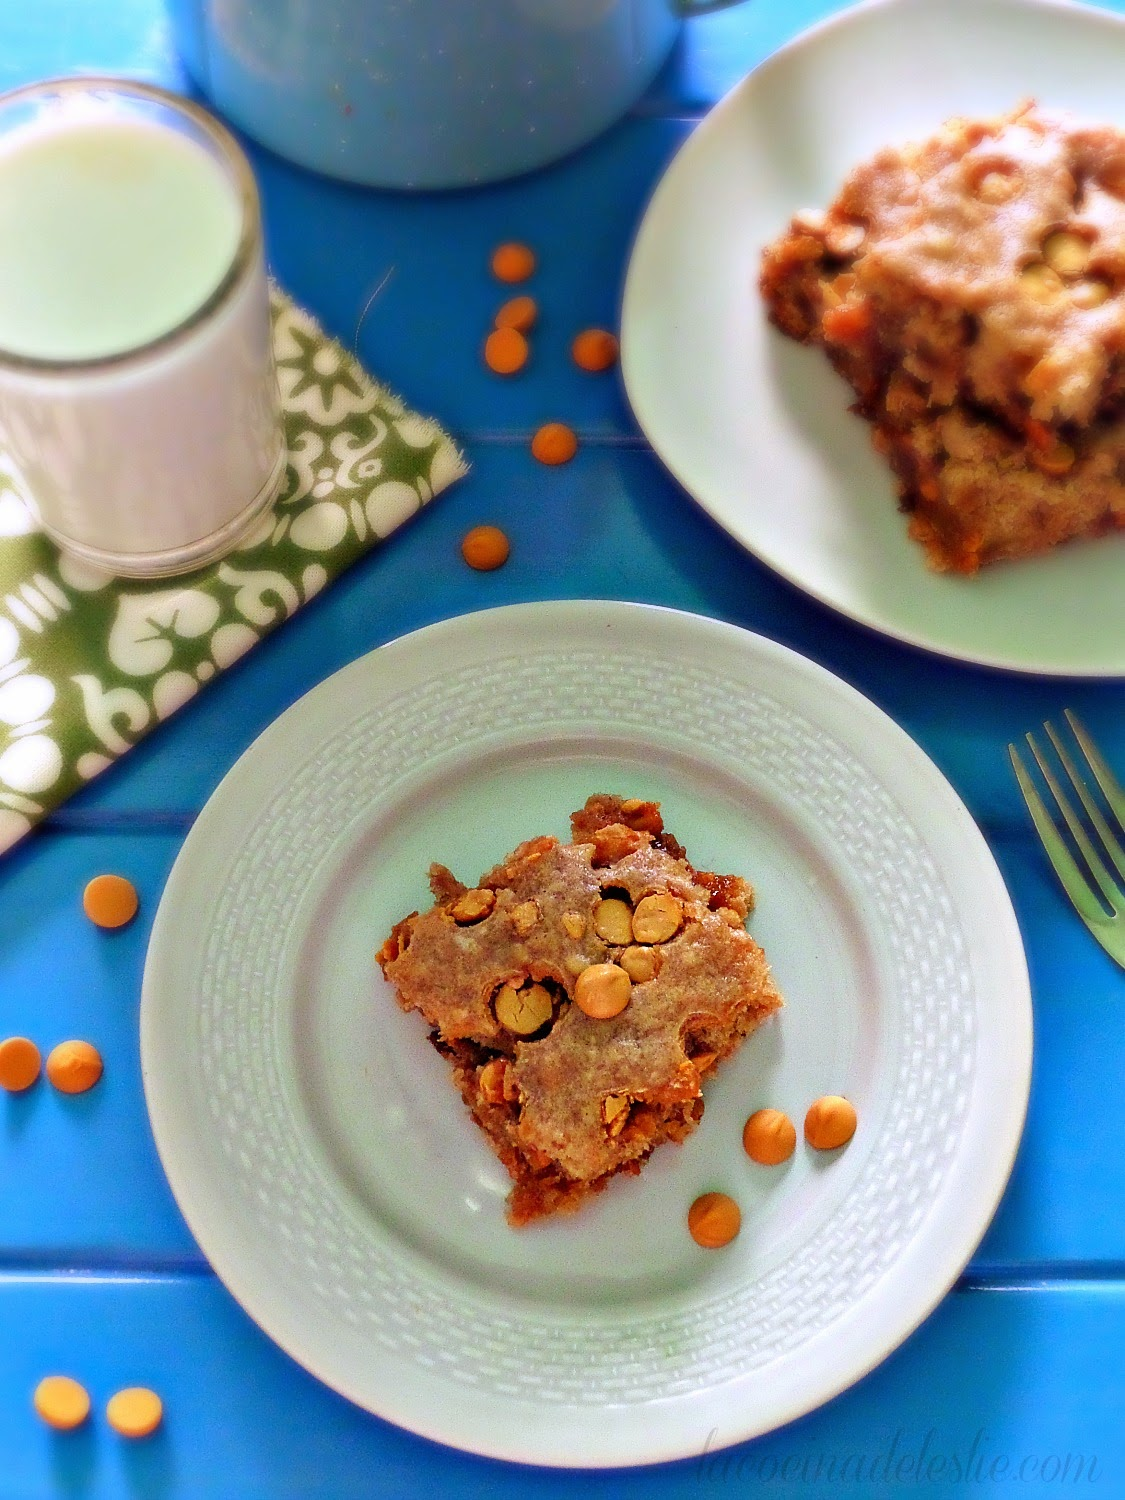 Banana Butterscotch Bars - lacocinadeleslie.com